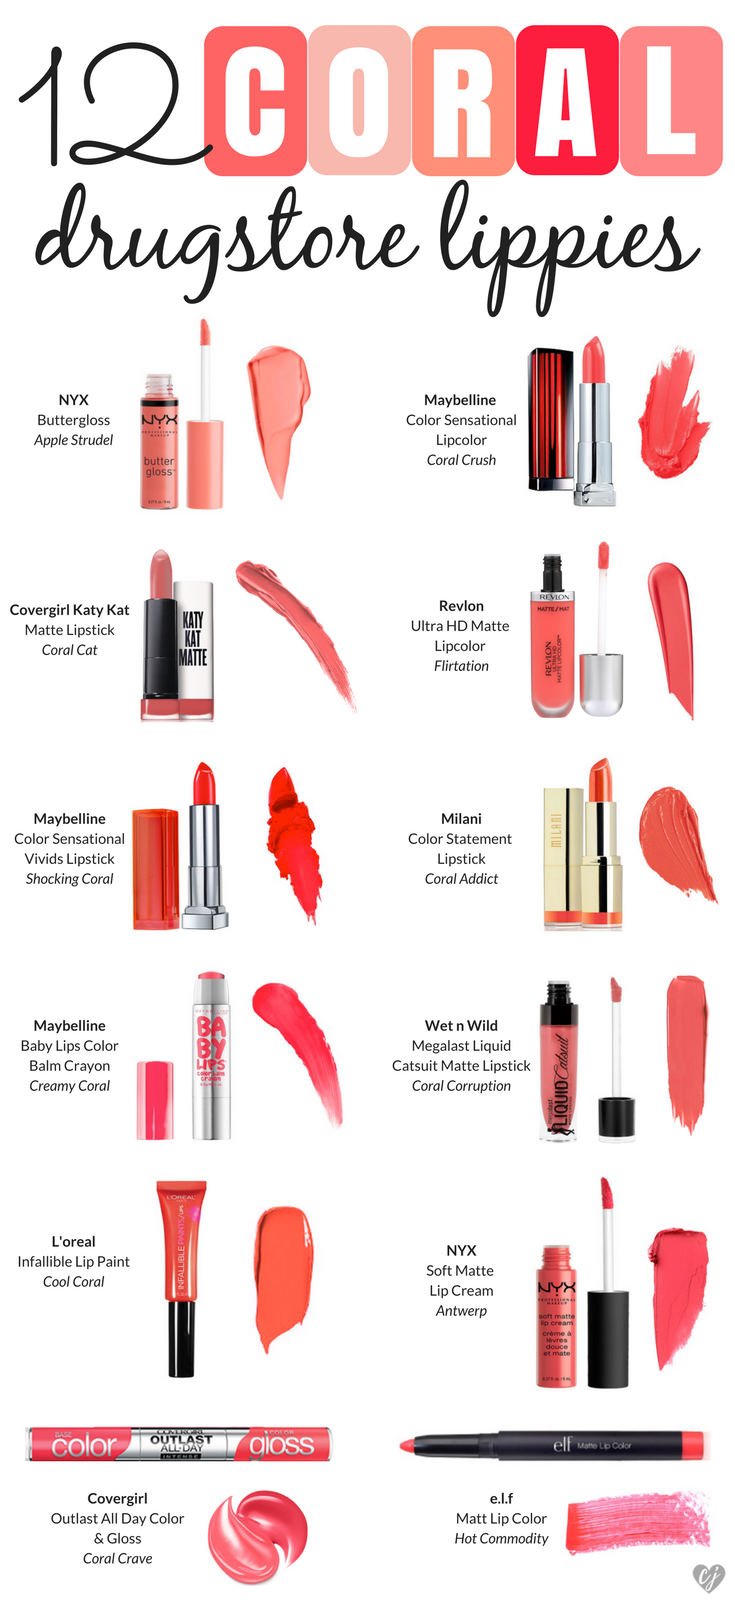 12 Coral Drugstore Lippies